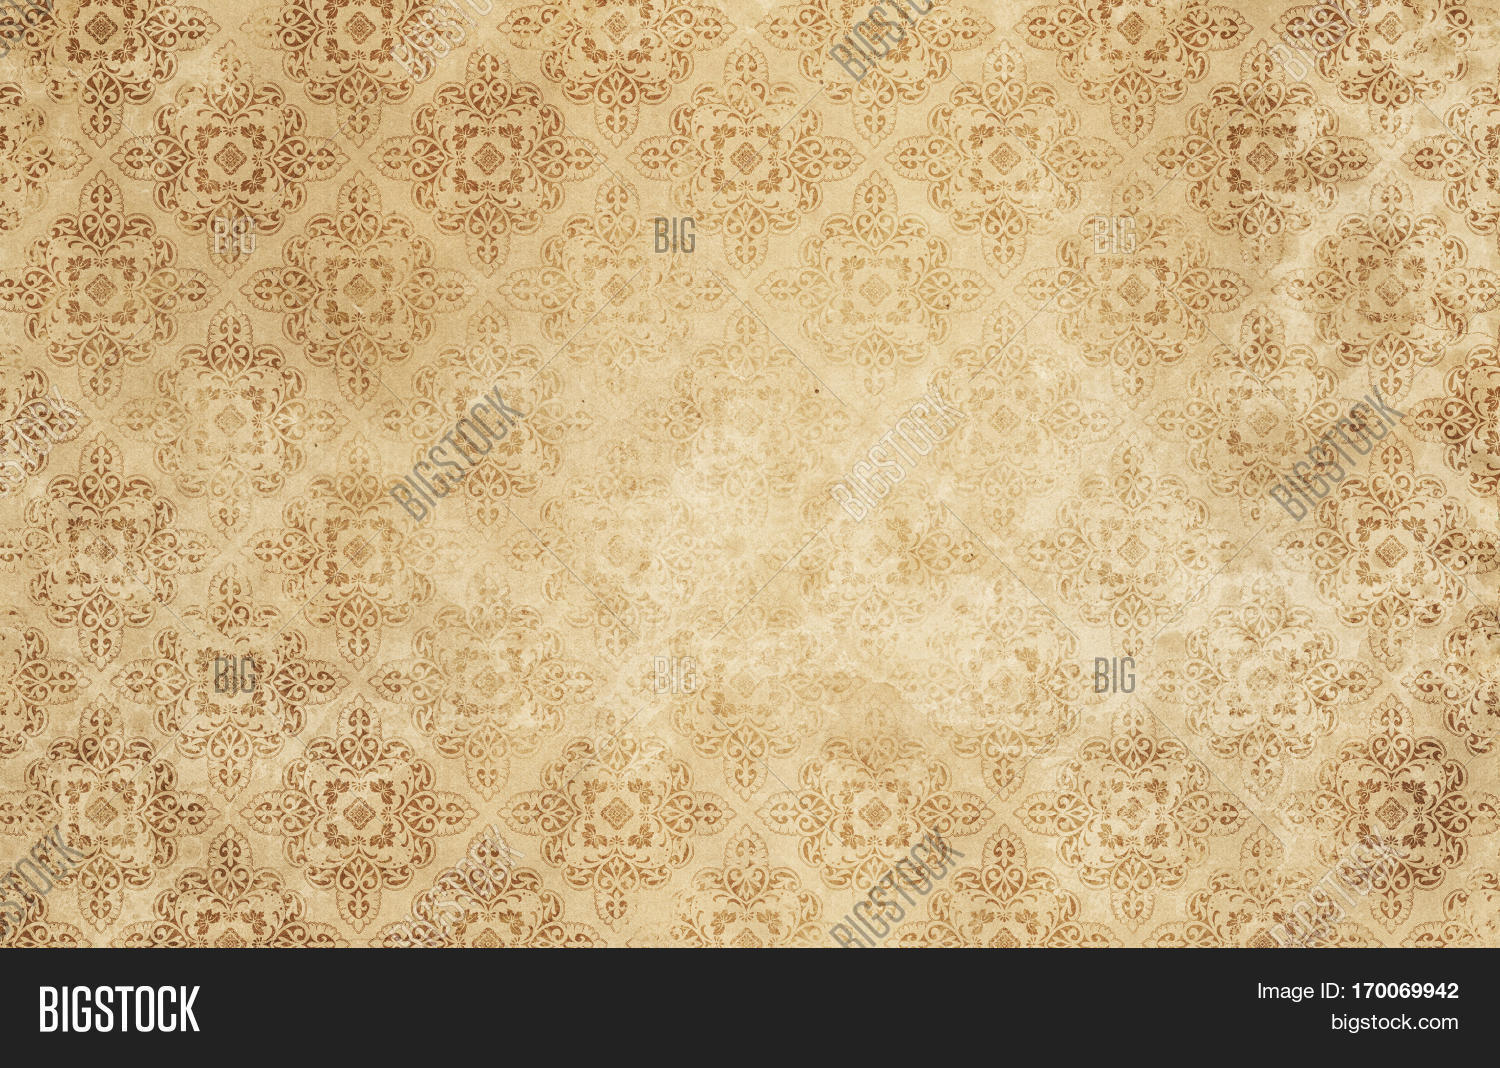 Old Dirty Paper Background With Fashioned Patterns Wallpaper For The Design